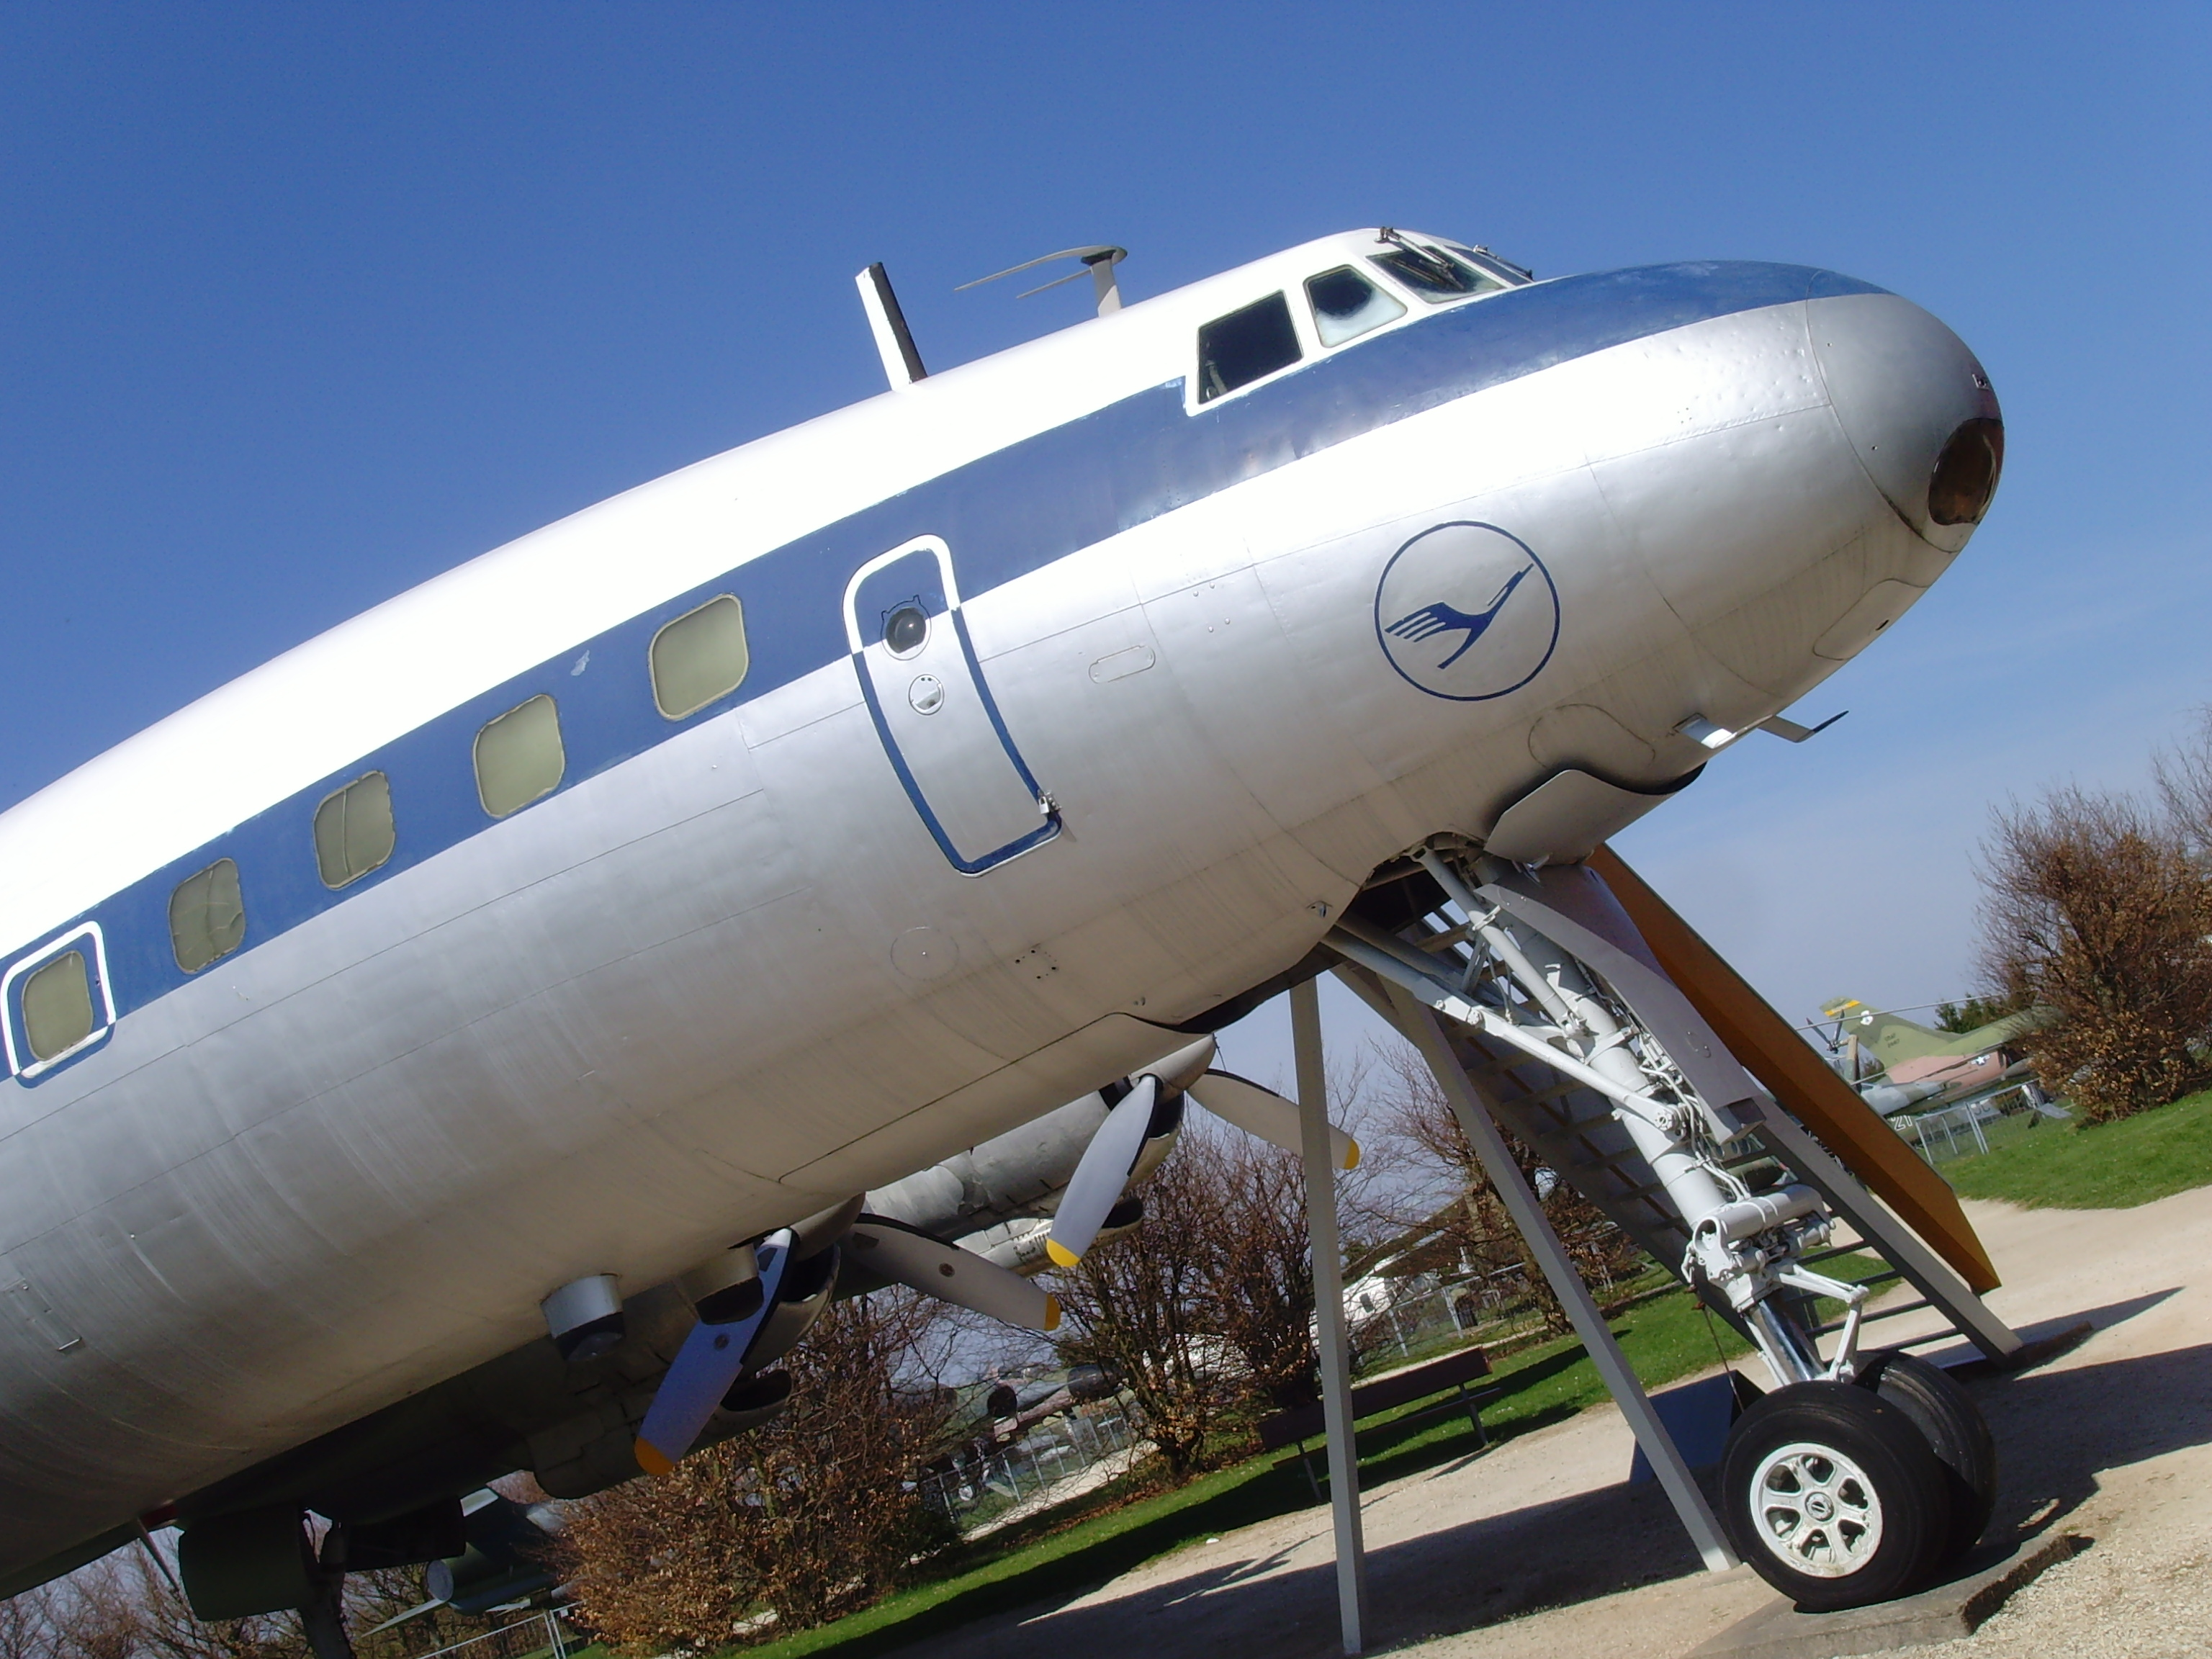 File:Flugausstellung Hermeskeil Lockheed L-1049 G Super Constellation - 5 -  Flickr -